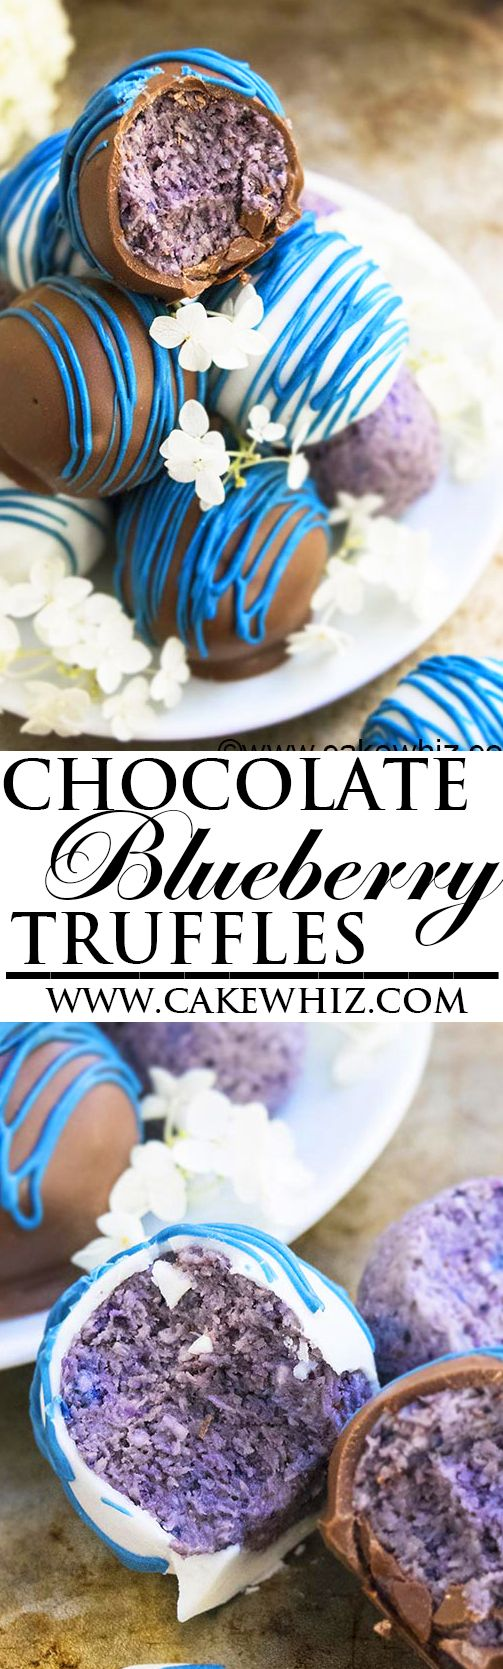 These easy healthy CHOCOLATE BLUEBERRY TRUFFLES are raw, vegan and made with ingredients that are good for you. Great as an energy snack or guilt free dessert! Perfect Summer recipe. {Ad} From cakewhiz.com